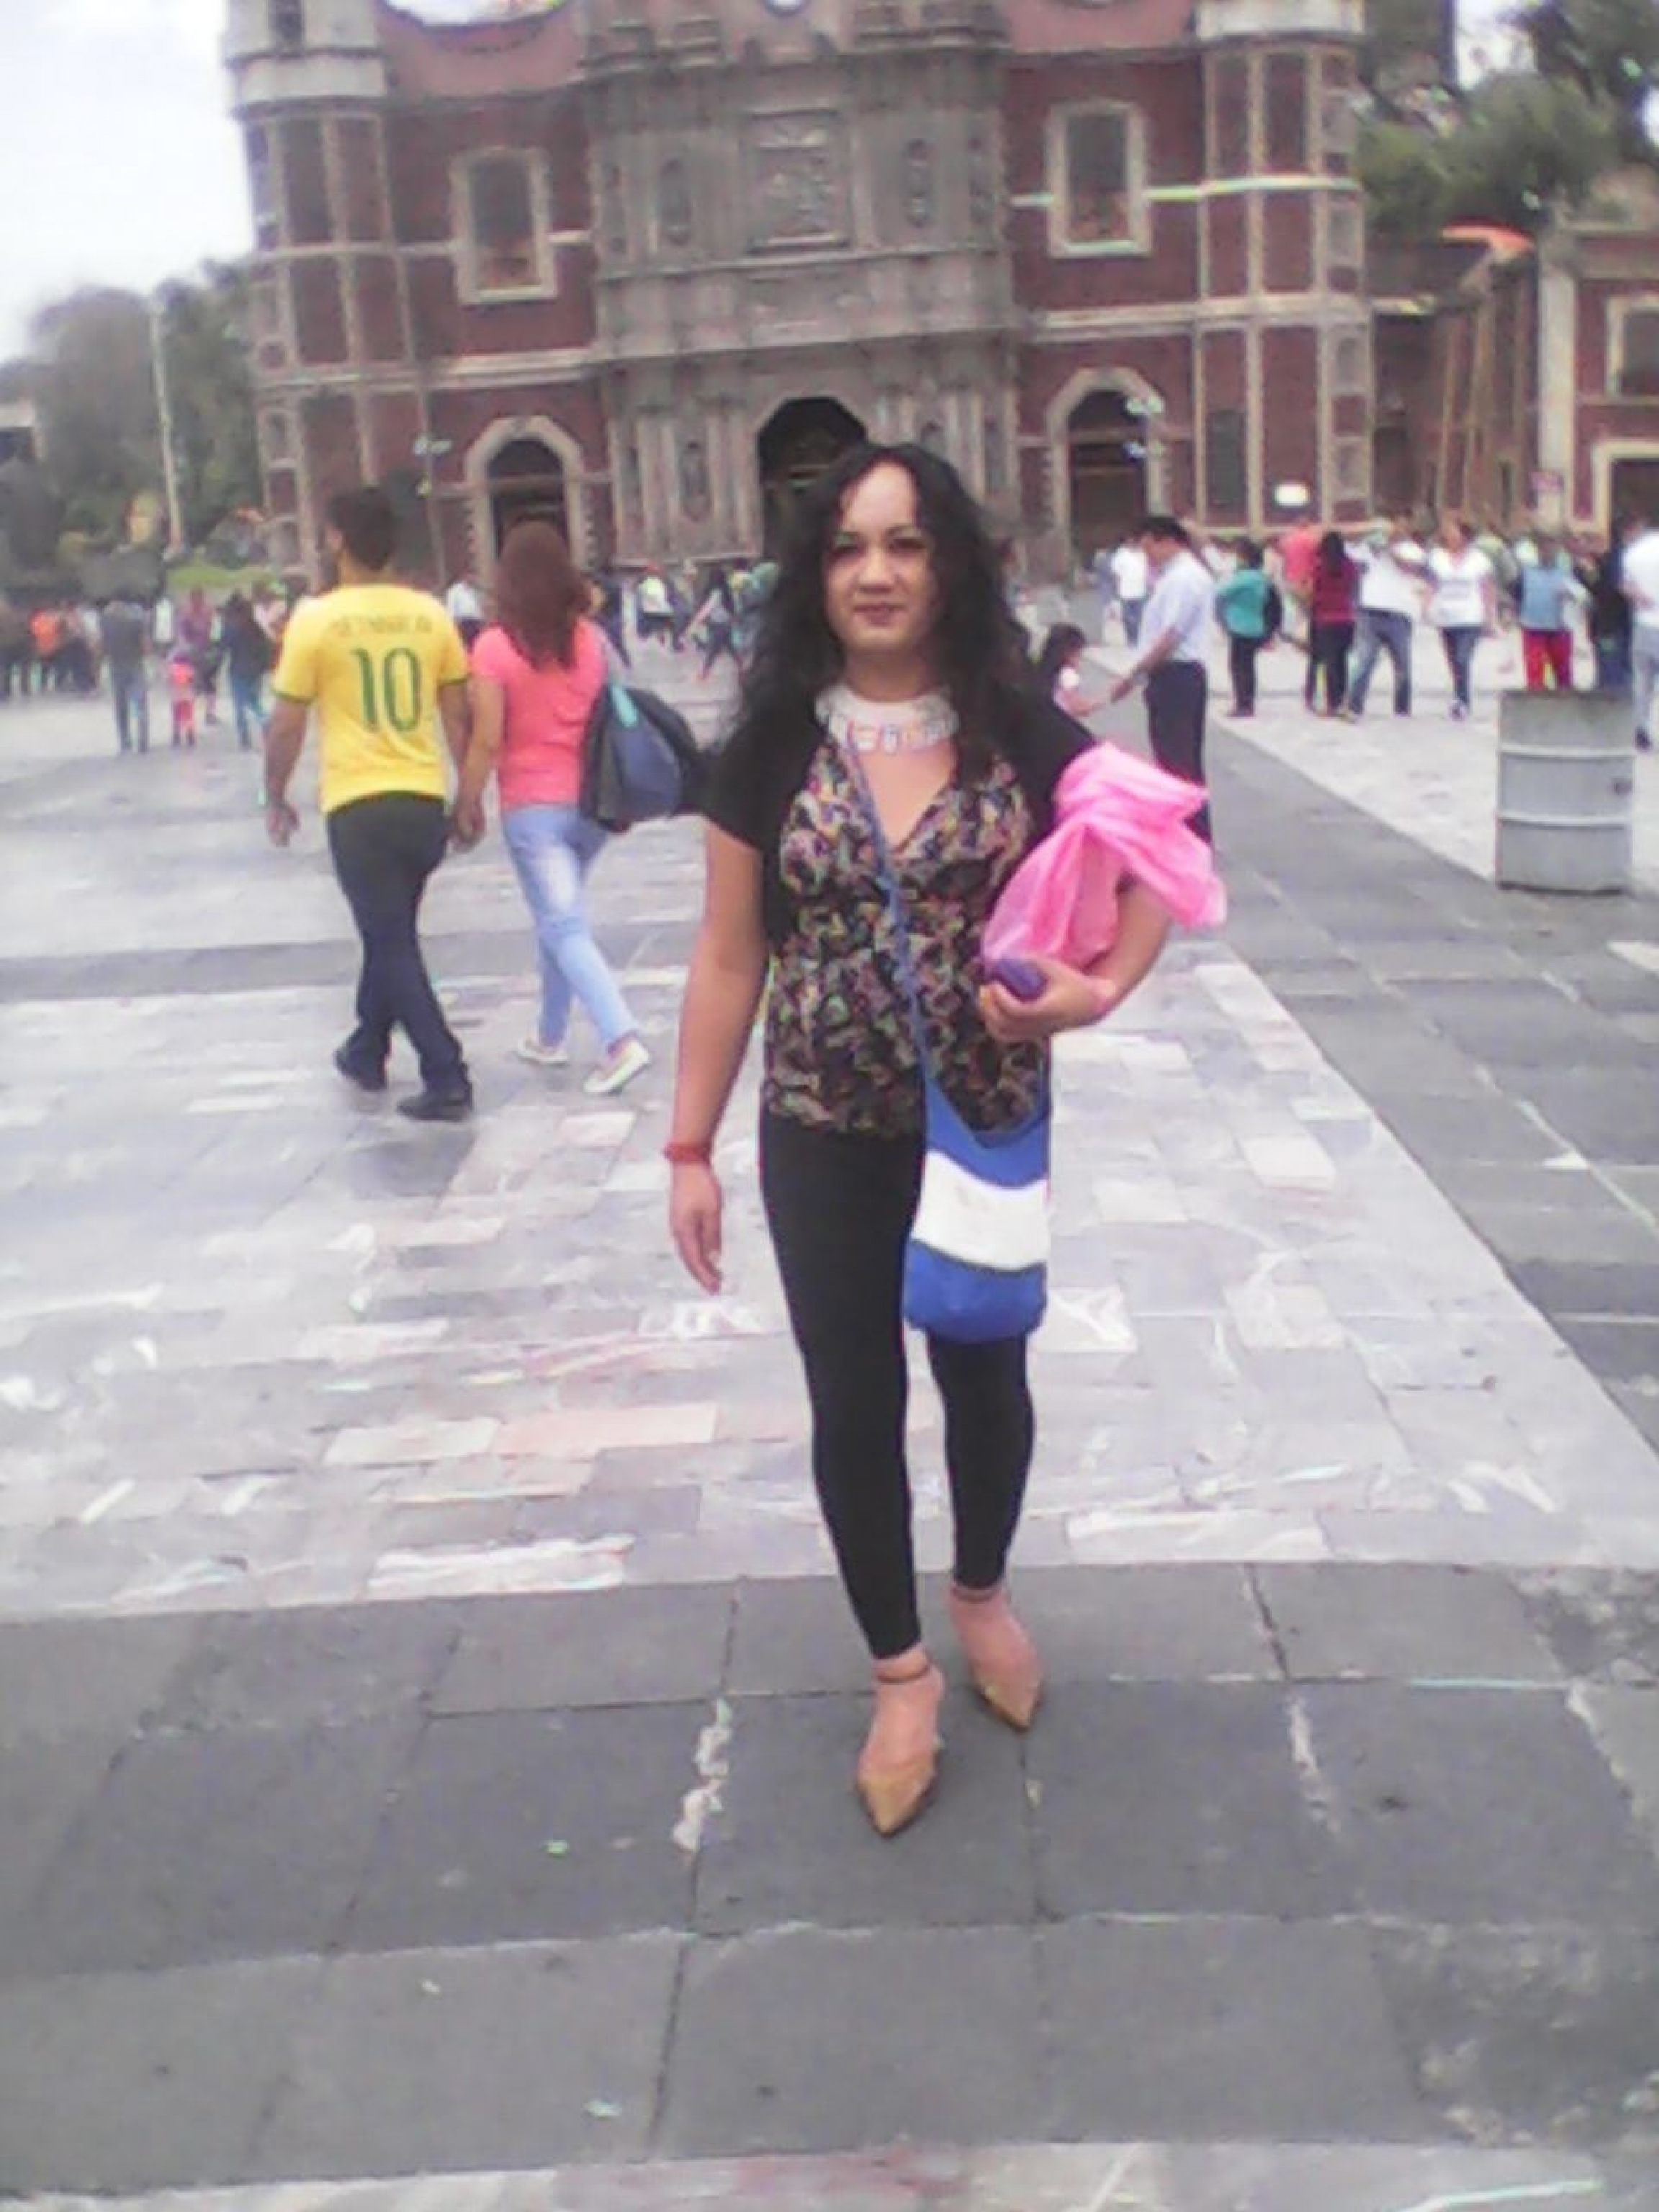 Camila Díaz had attempted to flee El Salvador multiple times after receiving threats and being assaulted while she did sex work